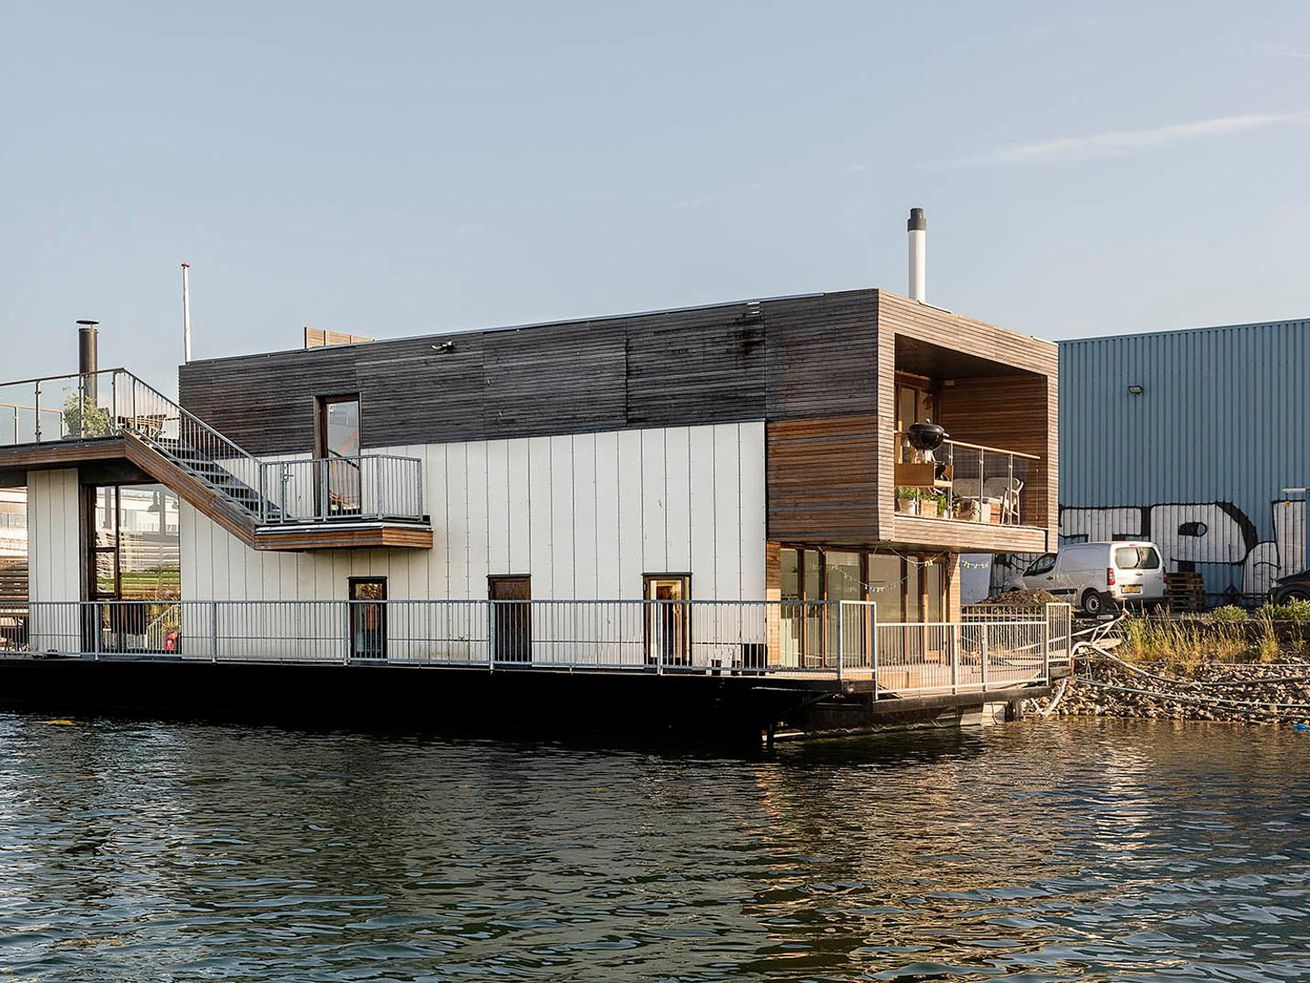 Luxe Danish houseboat with terrace yours for $925K